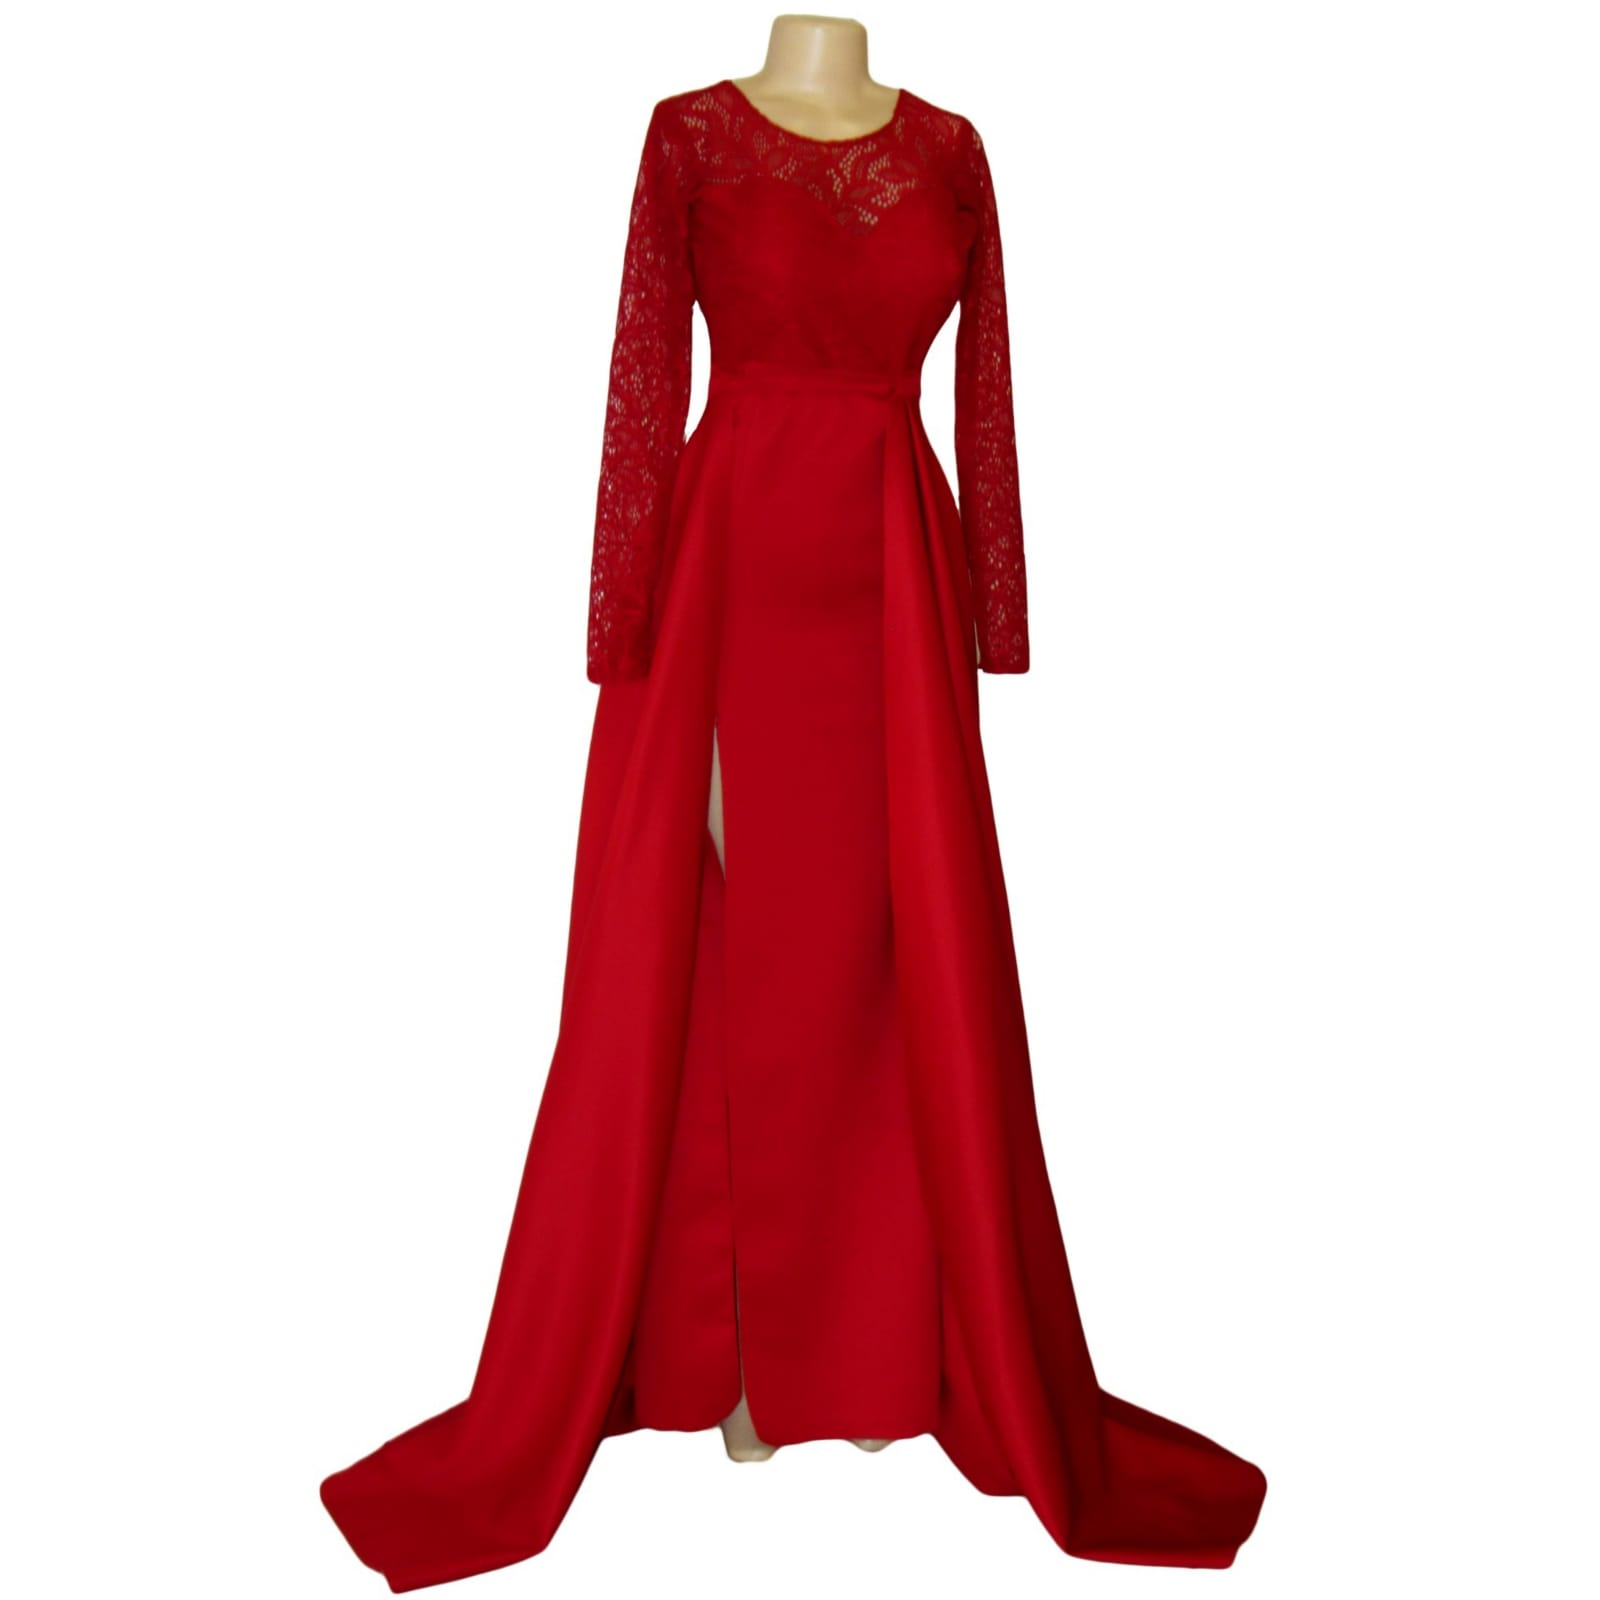 Straight cut deep red open back gala dress 6 straight cut deep red open back gala dress. With a lace bodice, long lace sleeves and a slit. With a detachable train.